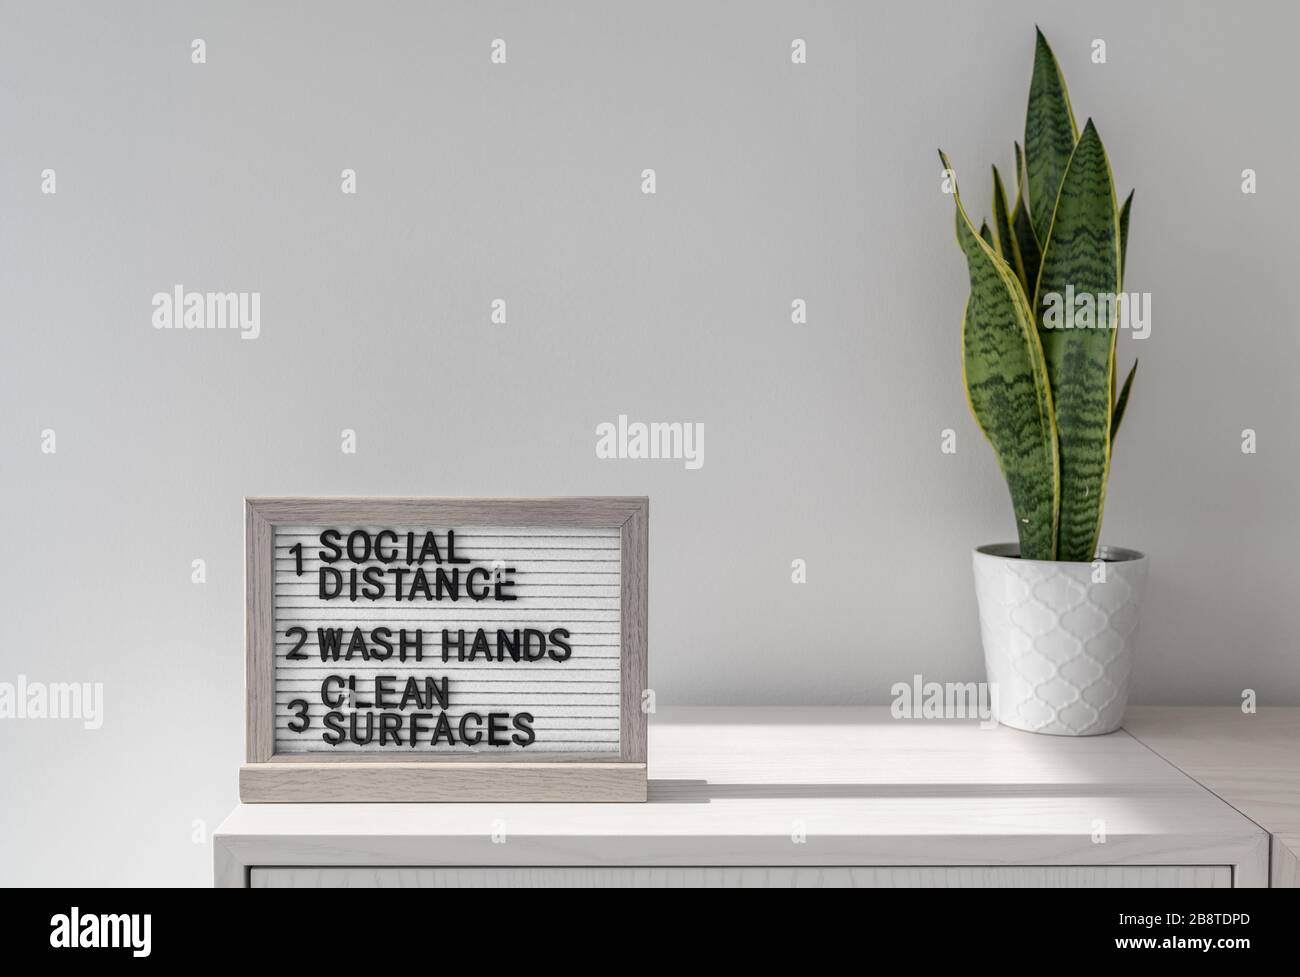 COVID-19 Coronavirus health safety guidelines. Text board in public space with rules, practice social distancing, wash hands often, clean surfaces Stock Photo